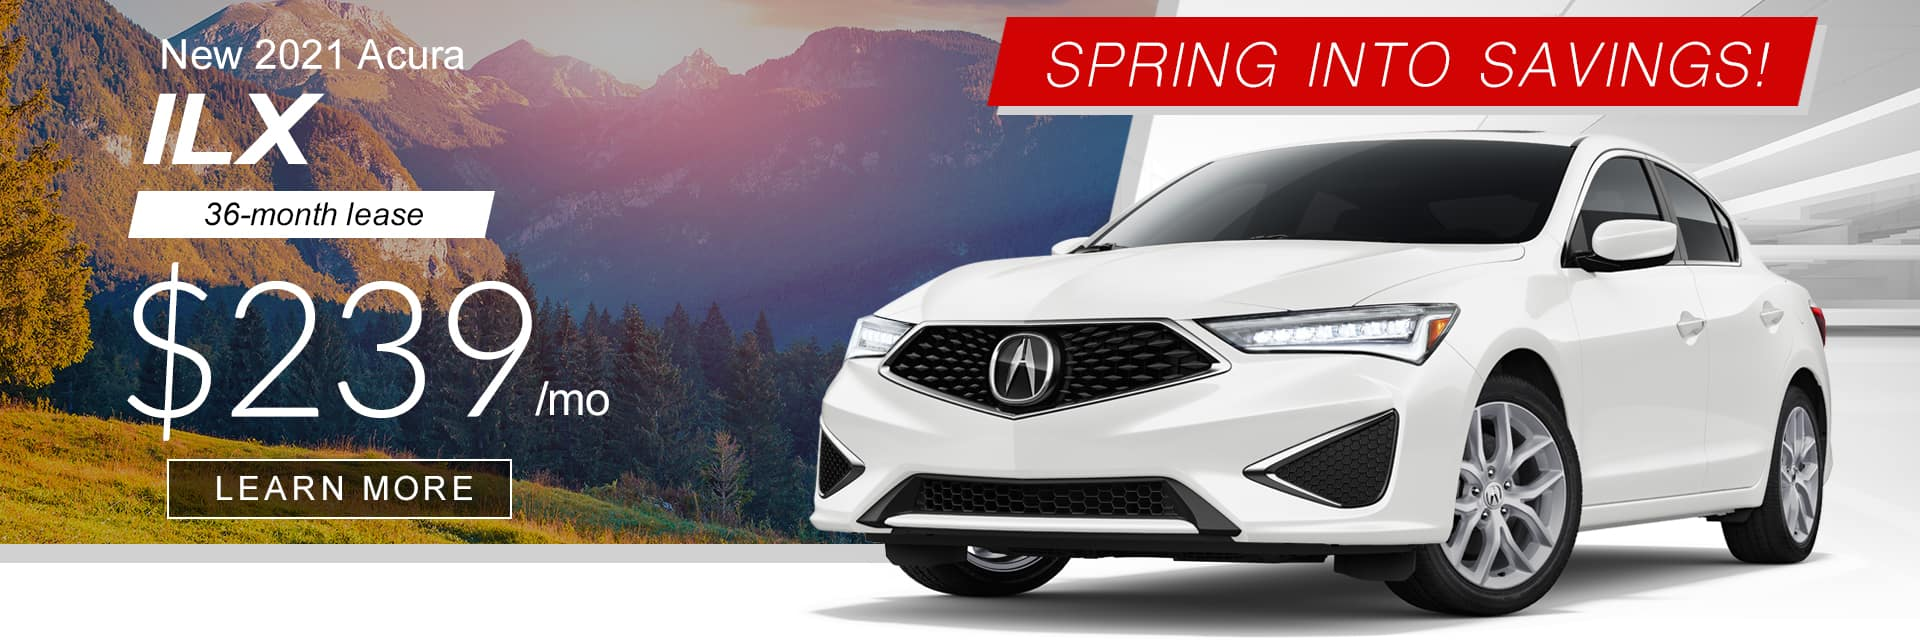 2021 ILX Spring into Savings Banner